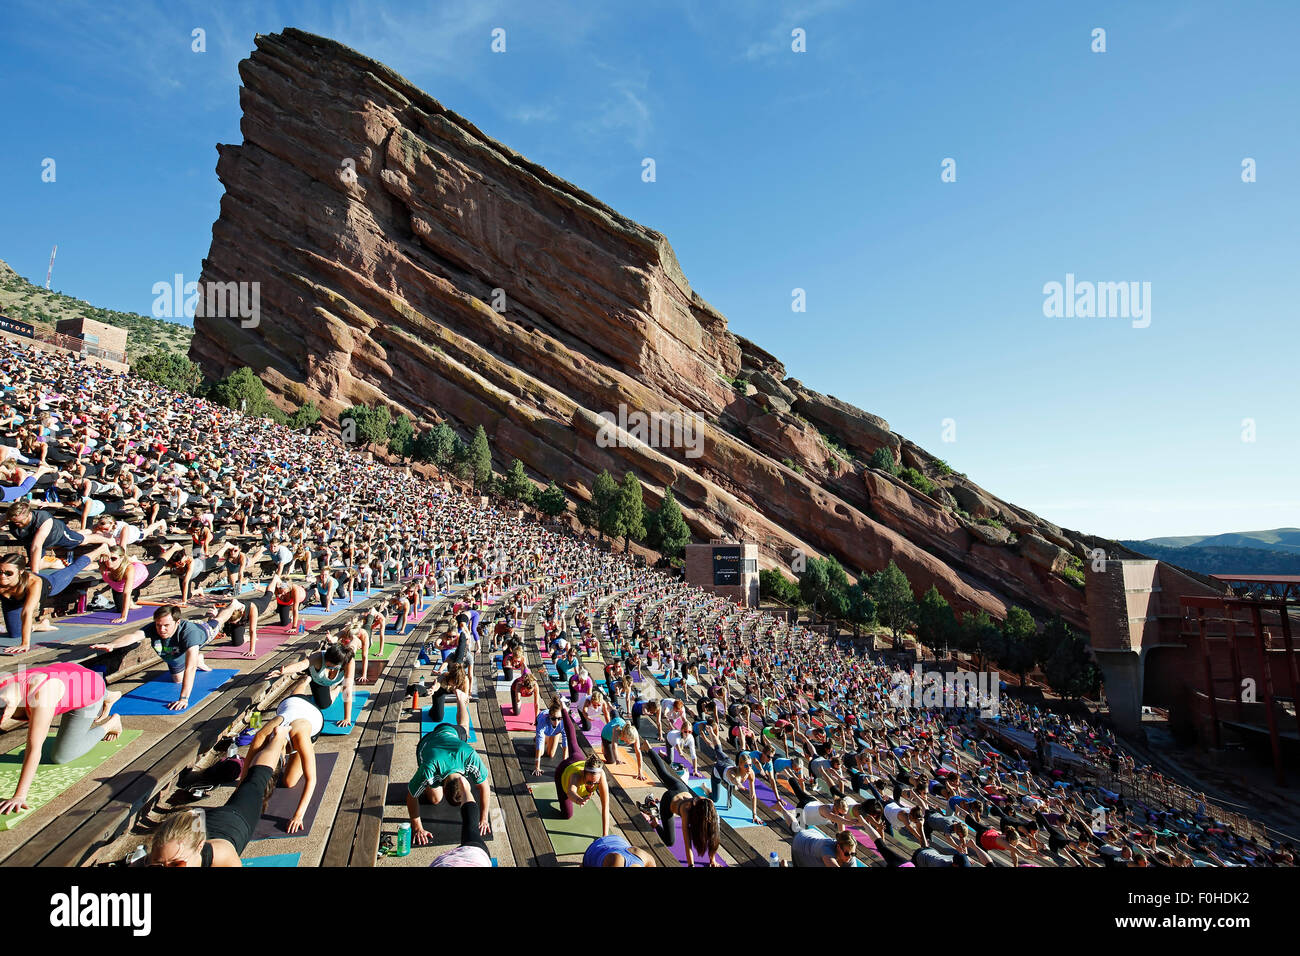 Yoga practitioners, Yoga on The Rocks, Red Rocks Amphitheatre, Morrison, Colorado USA - Stock Image